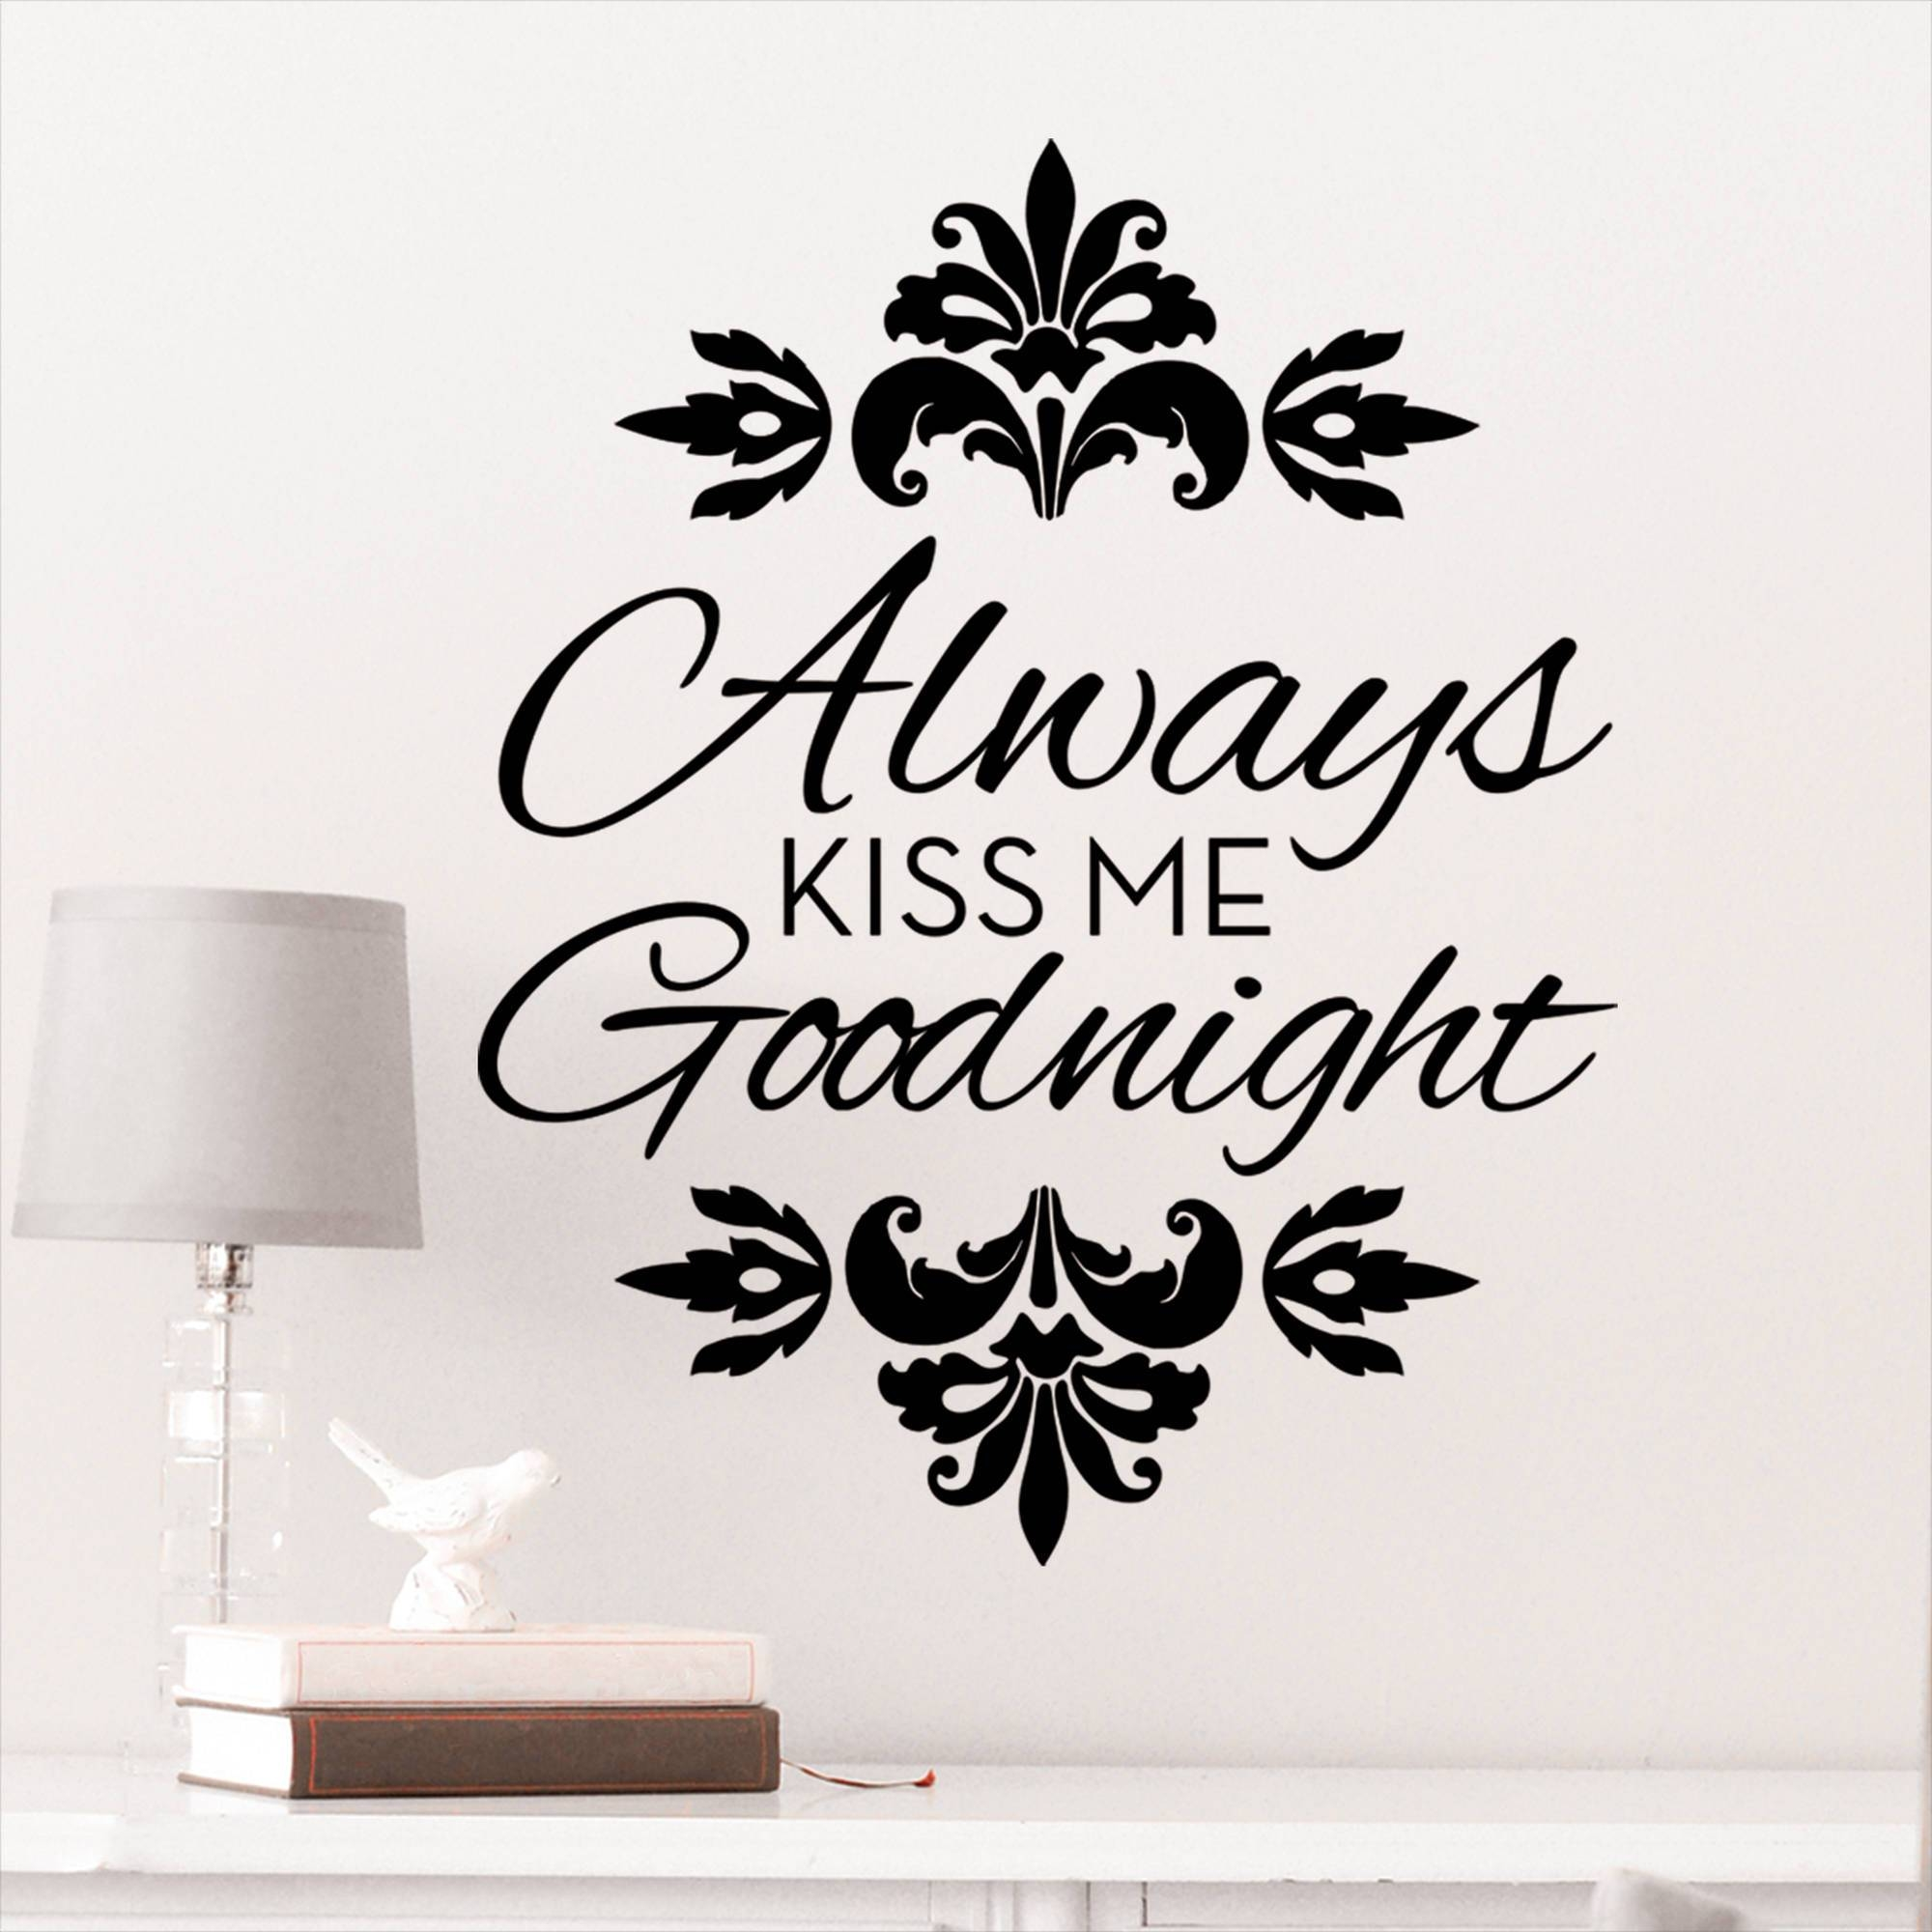 Walmart Wall Decals | Roselawnlutheran With Regard To Best And Newest Walmart Wall Stickers (View 13 of 25)